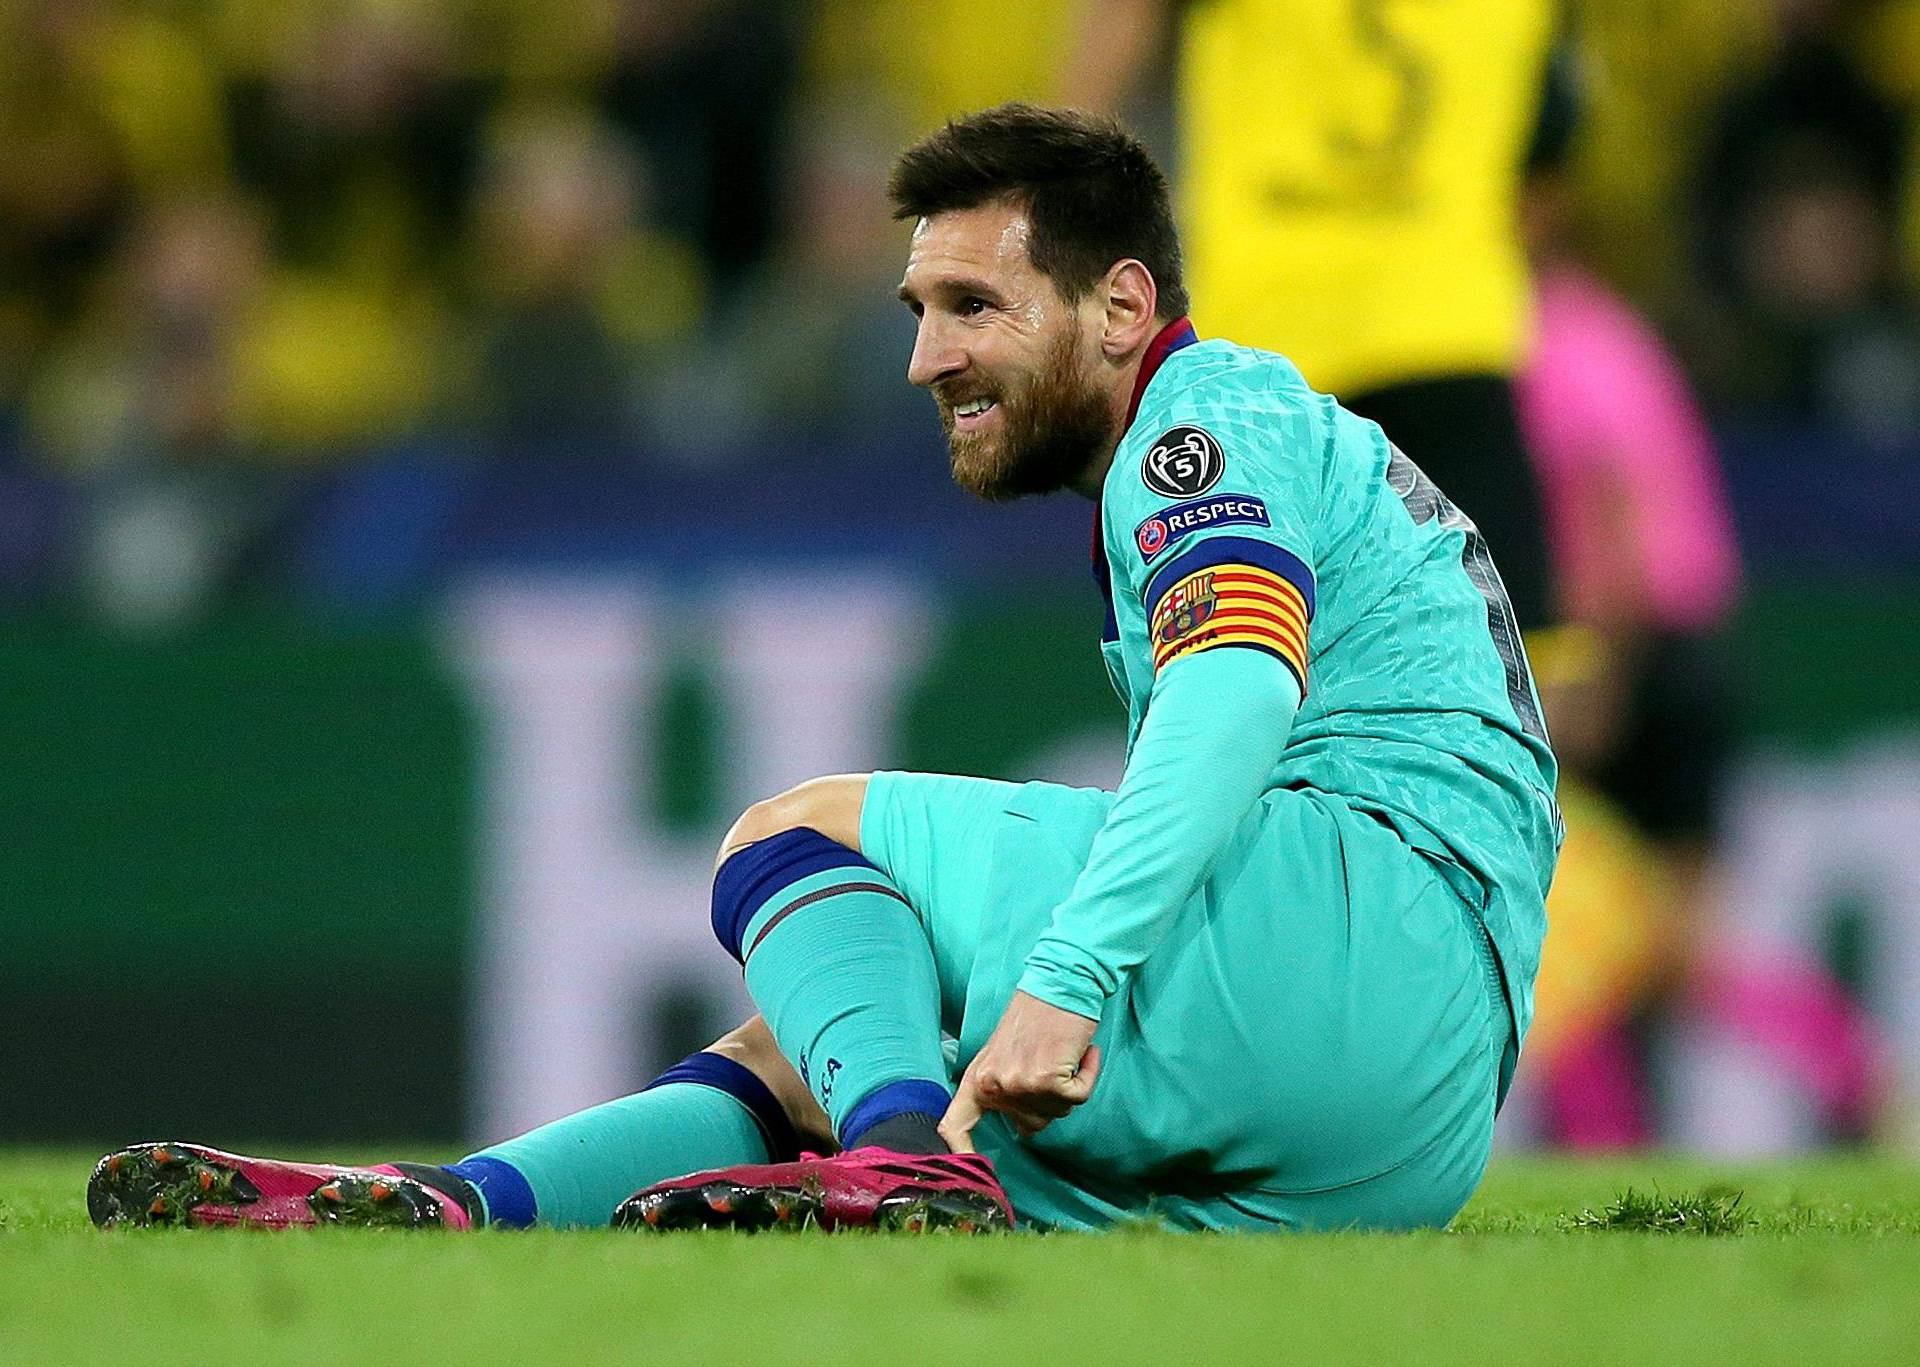 firo: 17.09.2019, Football, Season 2019/2020, Champions League, Group stage, Borussia Dortmund - FC Barcelona,